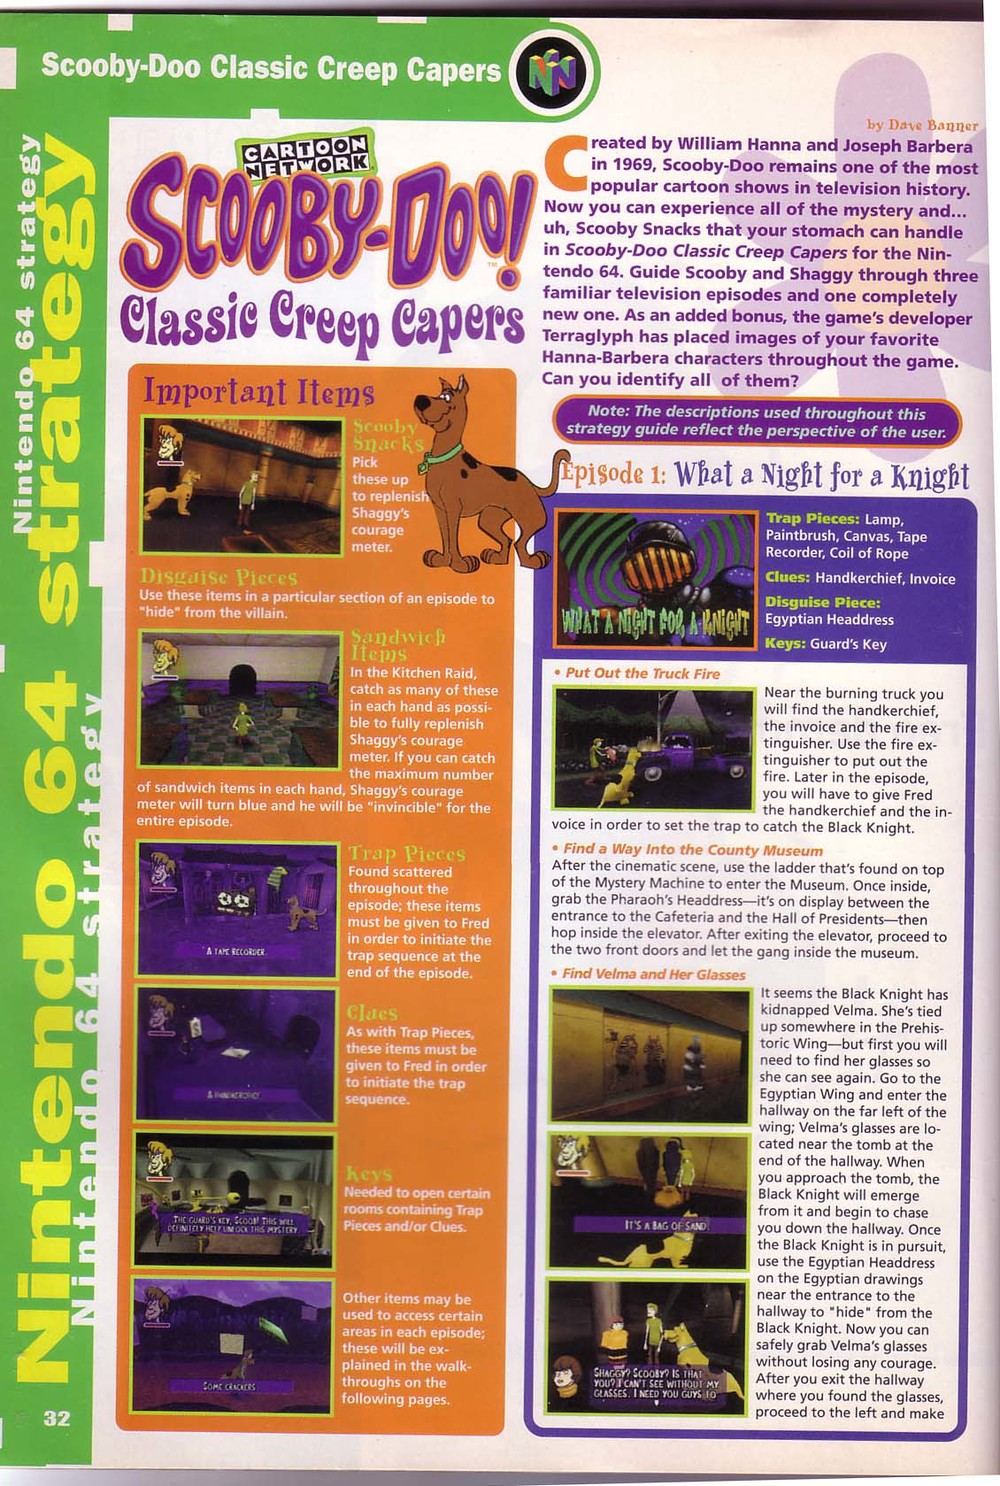 TipsandTricks_Feb_2001_ScoobyDoo_pg1_Strategy.jpg